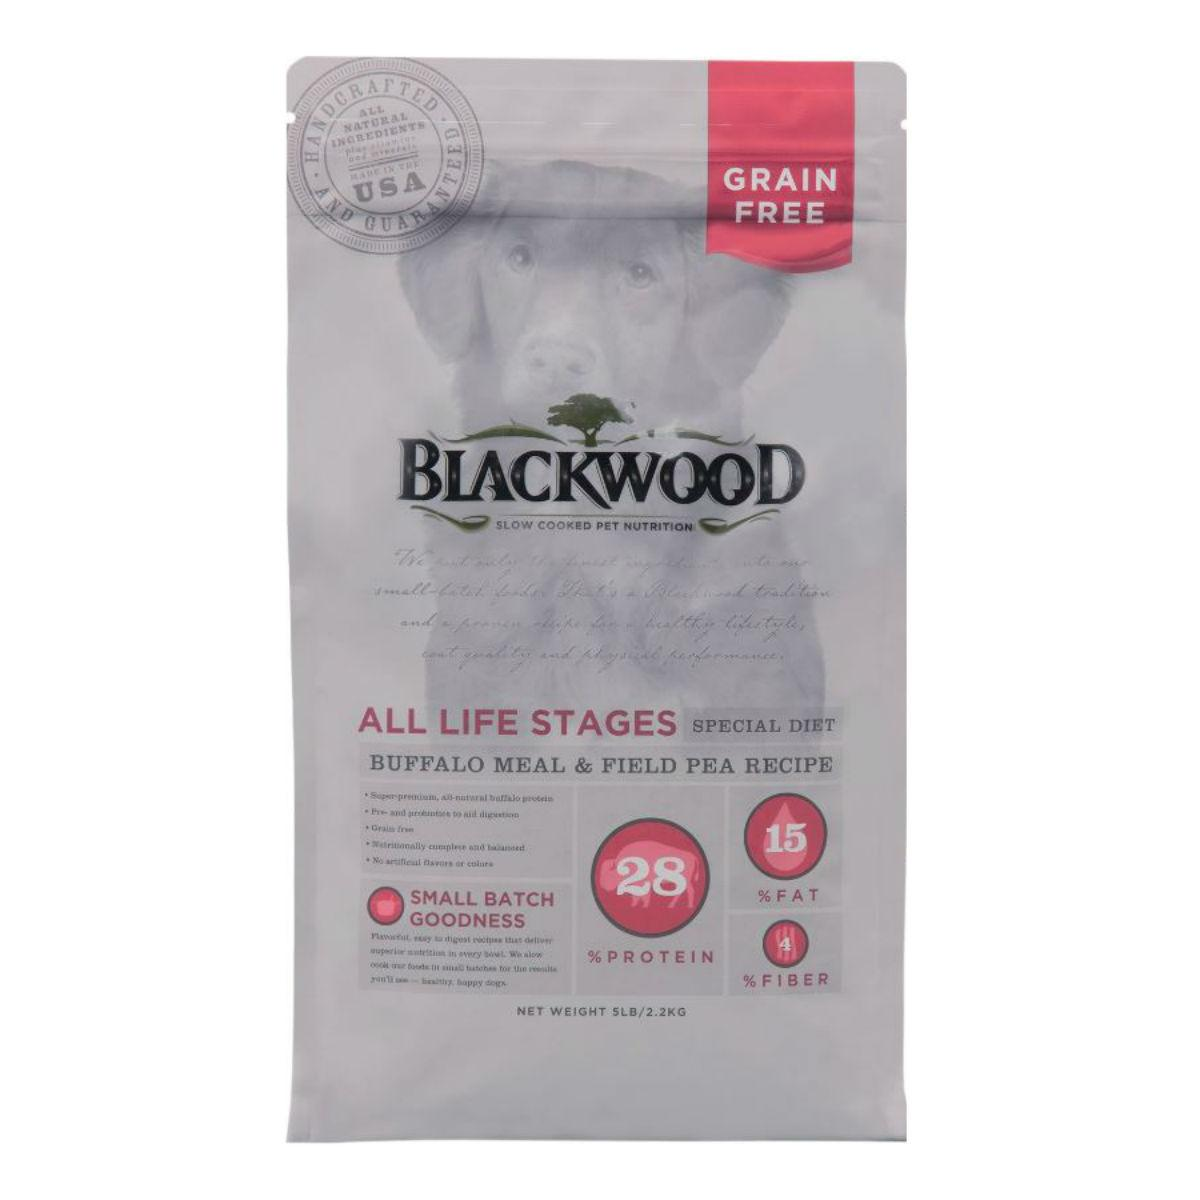 Blackwood Special Diet Dog Food - Buffalo Meal & Field Pea